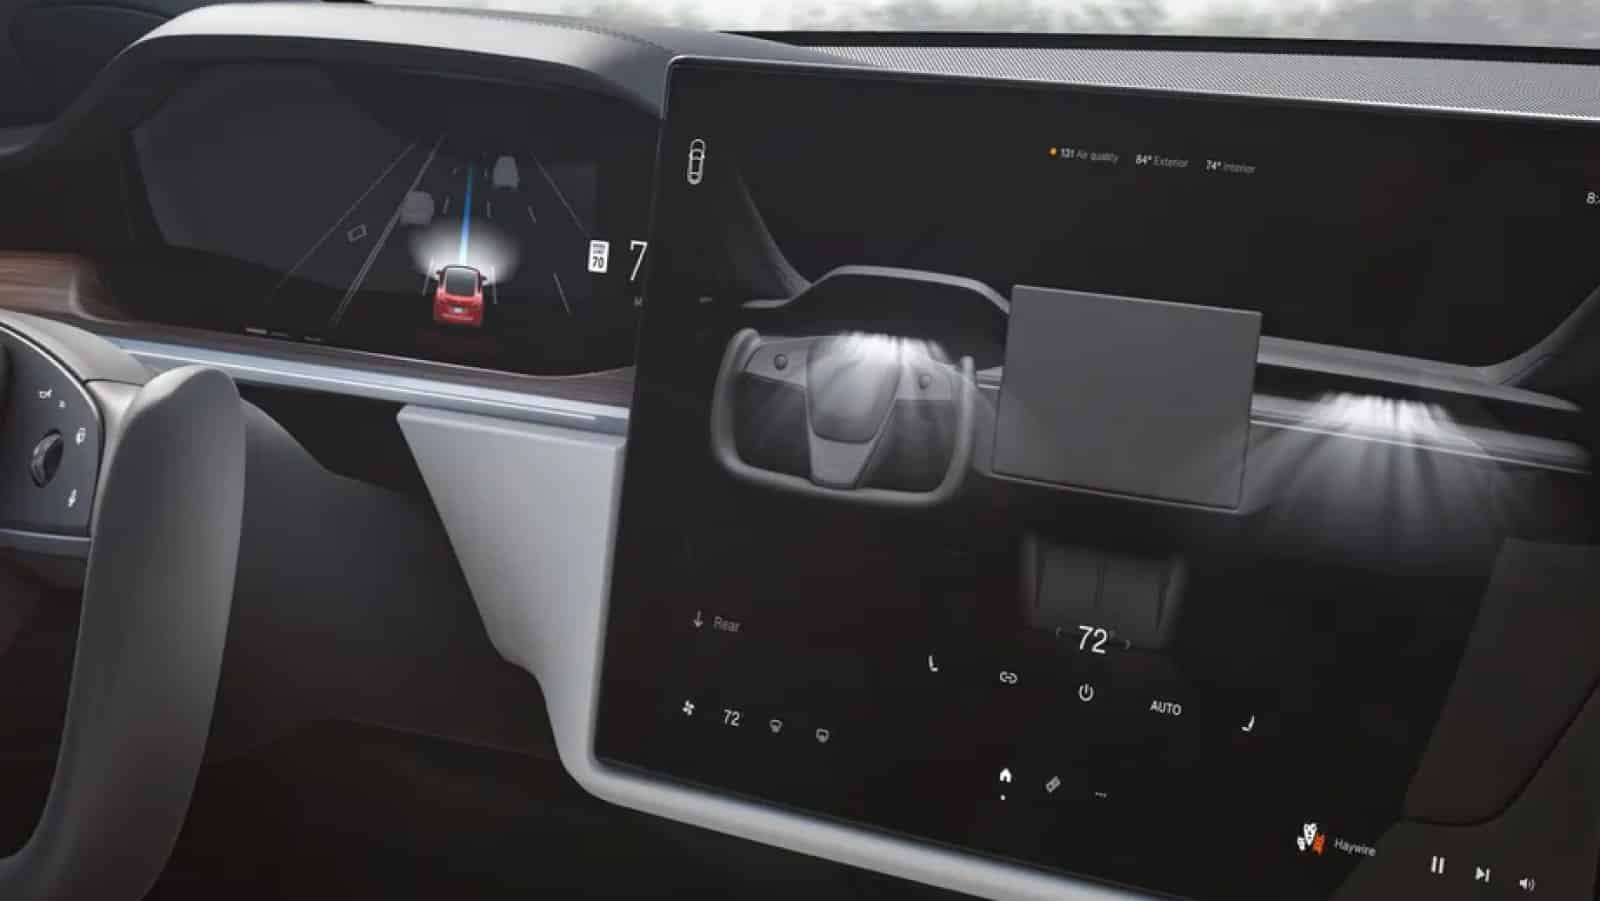 tesla interior showing car icon on touchscreen for gear selection